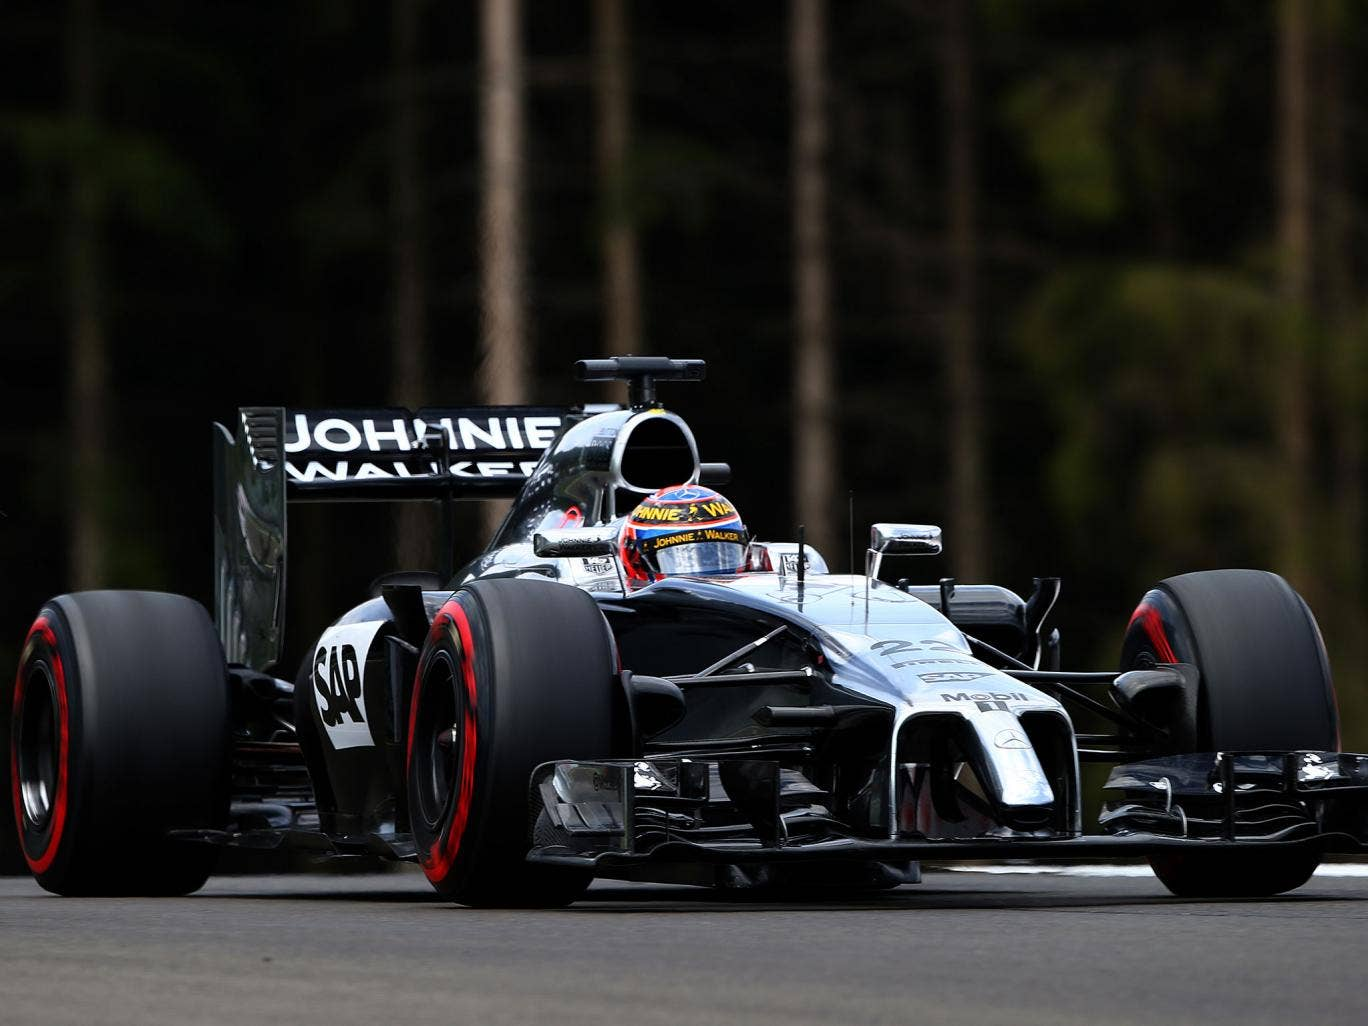 Jenson Button says he is focusing on improving McLaren's results despite his contract running out at the end of the season